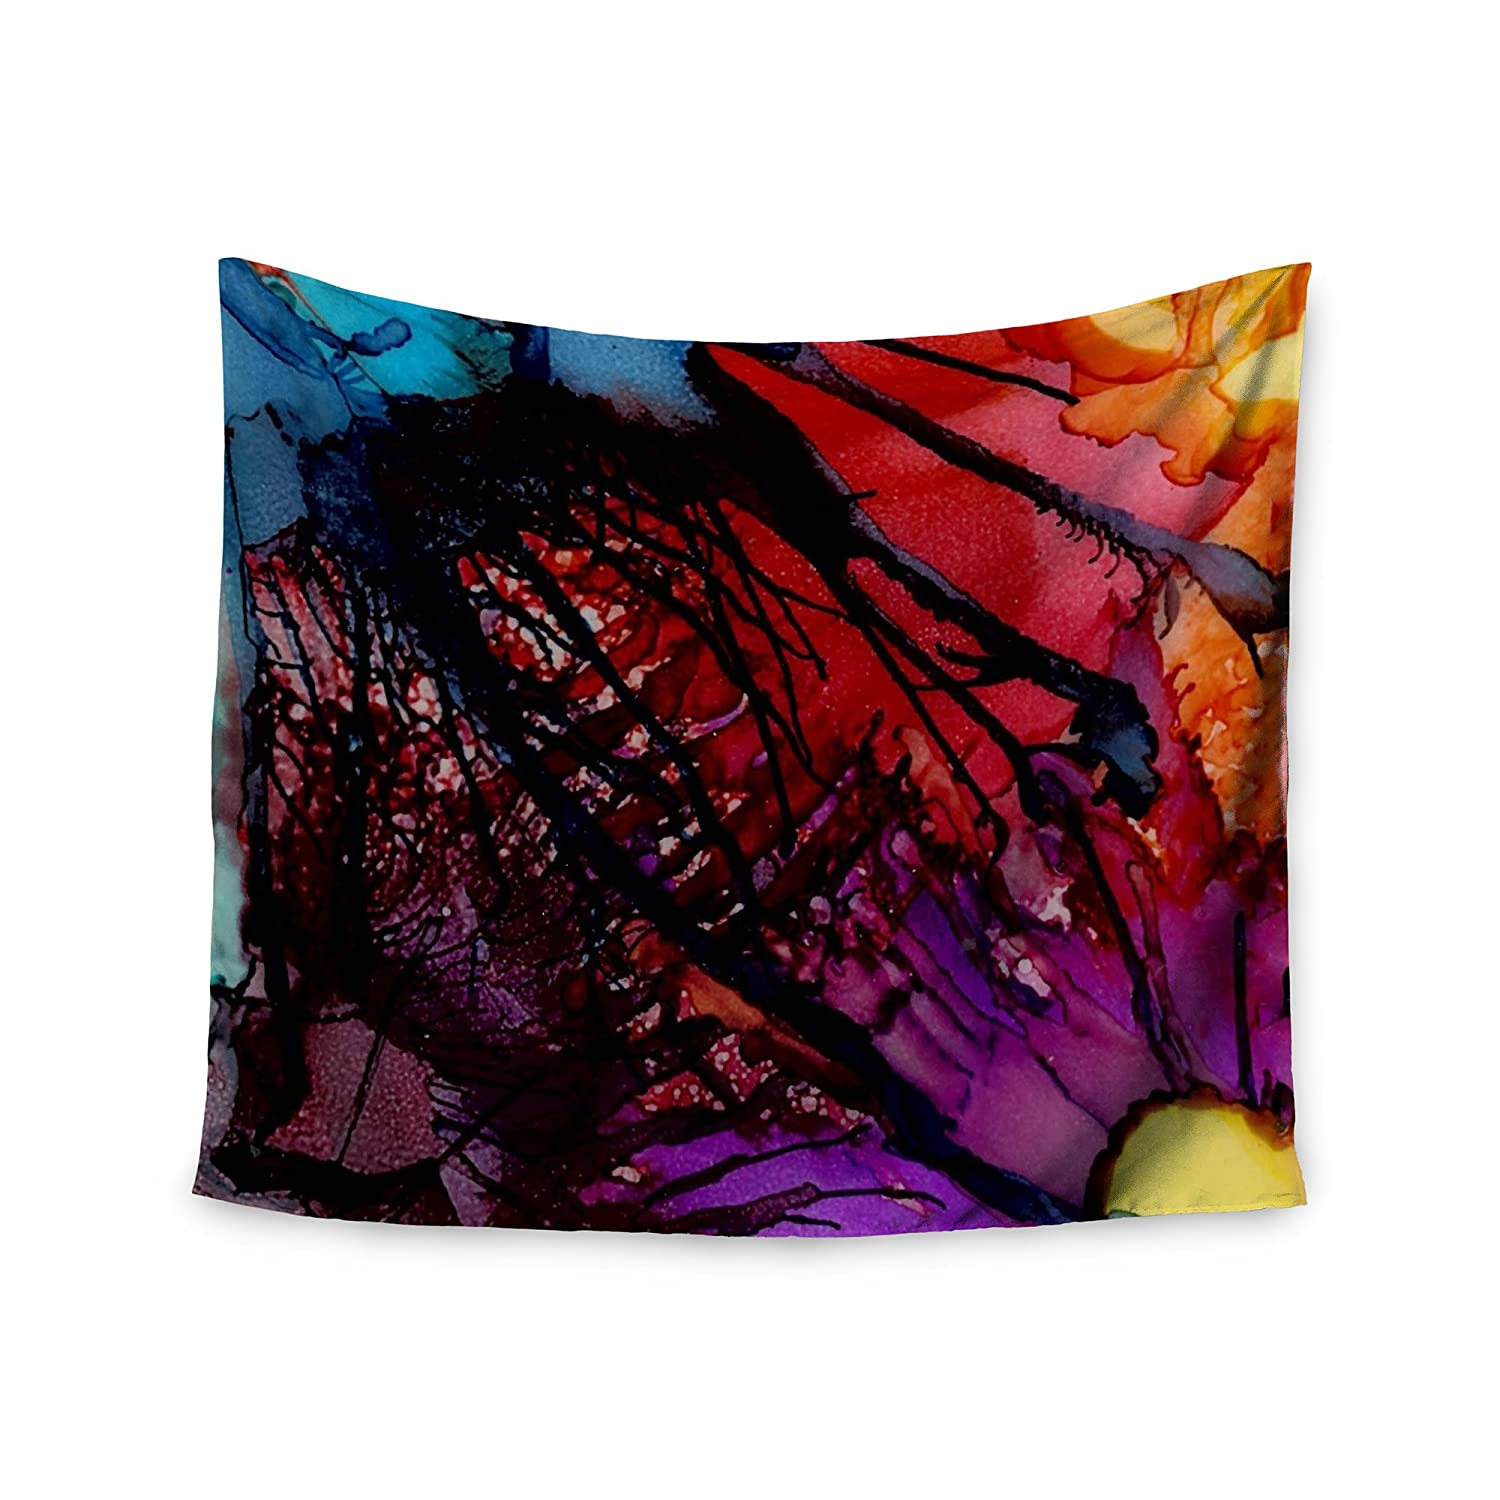 KESS InHouse Abstract Anarchy Design Daisy Purple Yellow Wall Tapestry 68 x 80